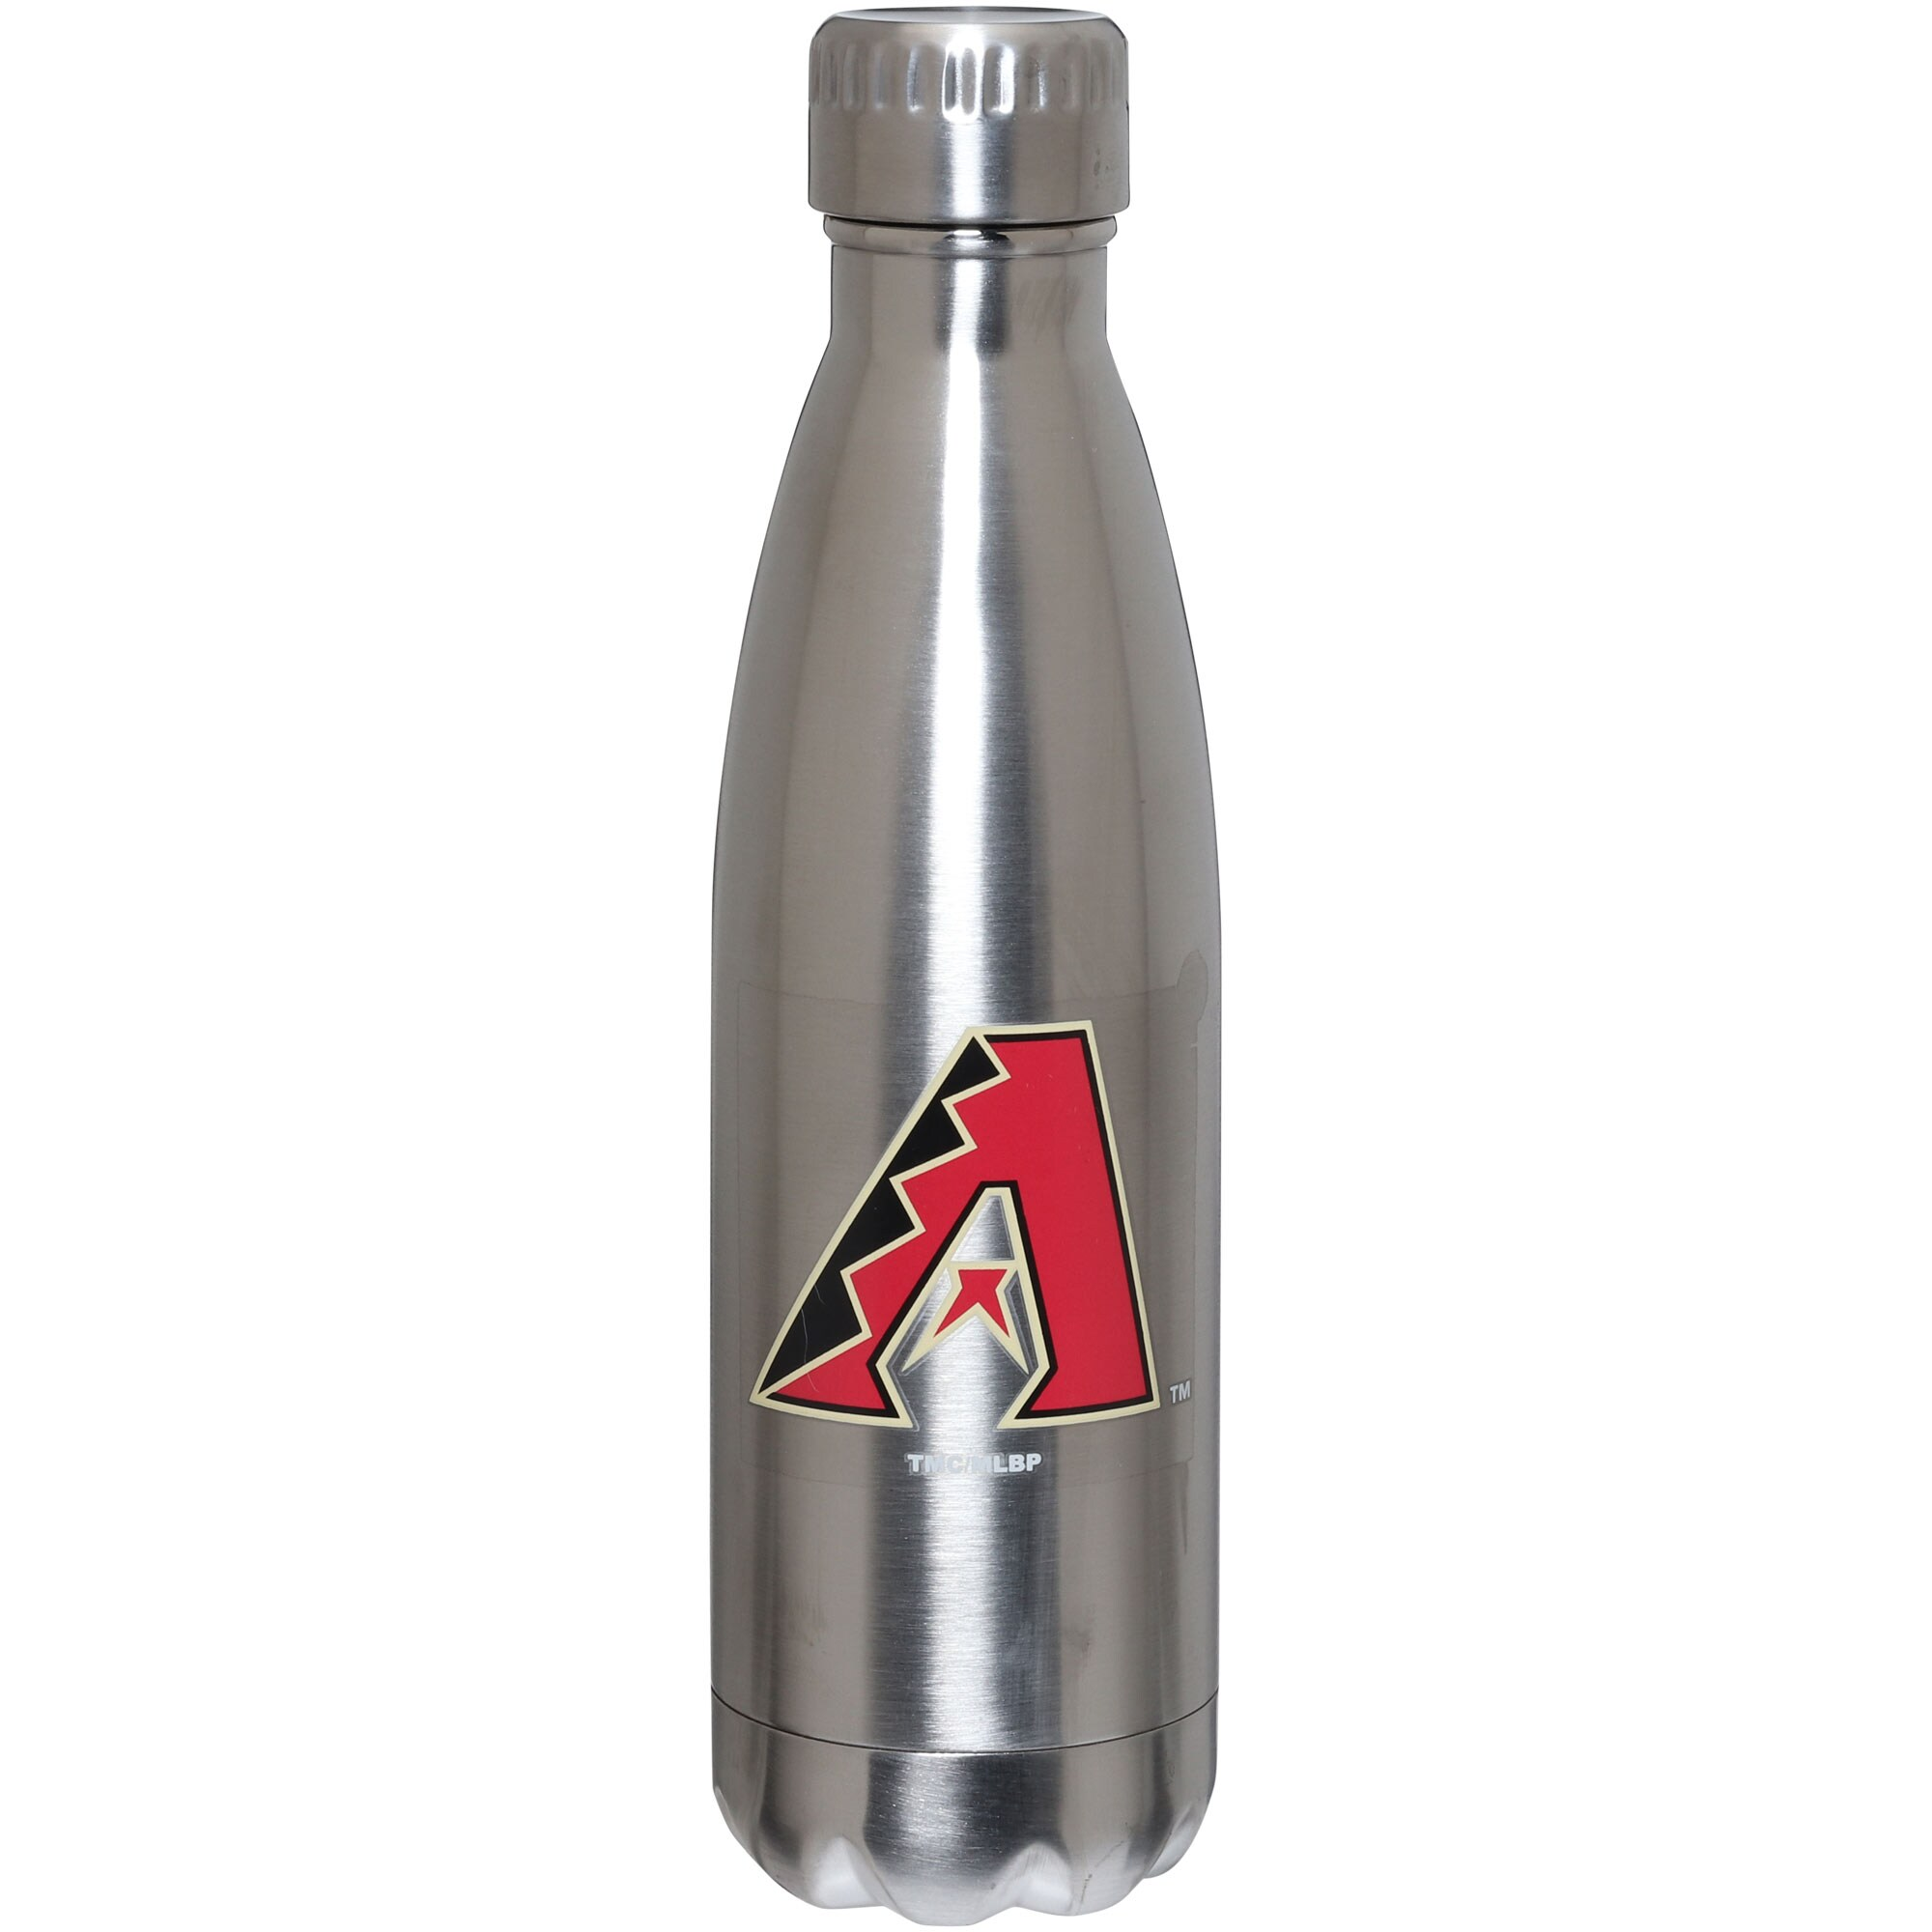 Arizona Diamondbacks 16oz. Stainless Steel Water Bottle